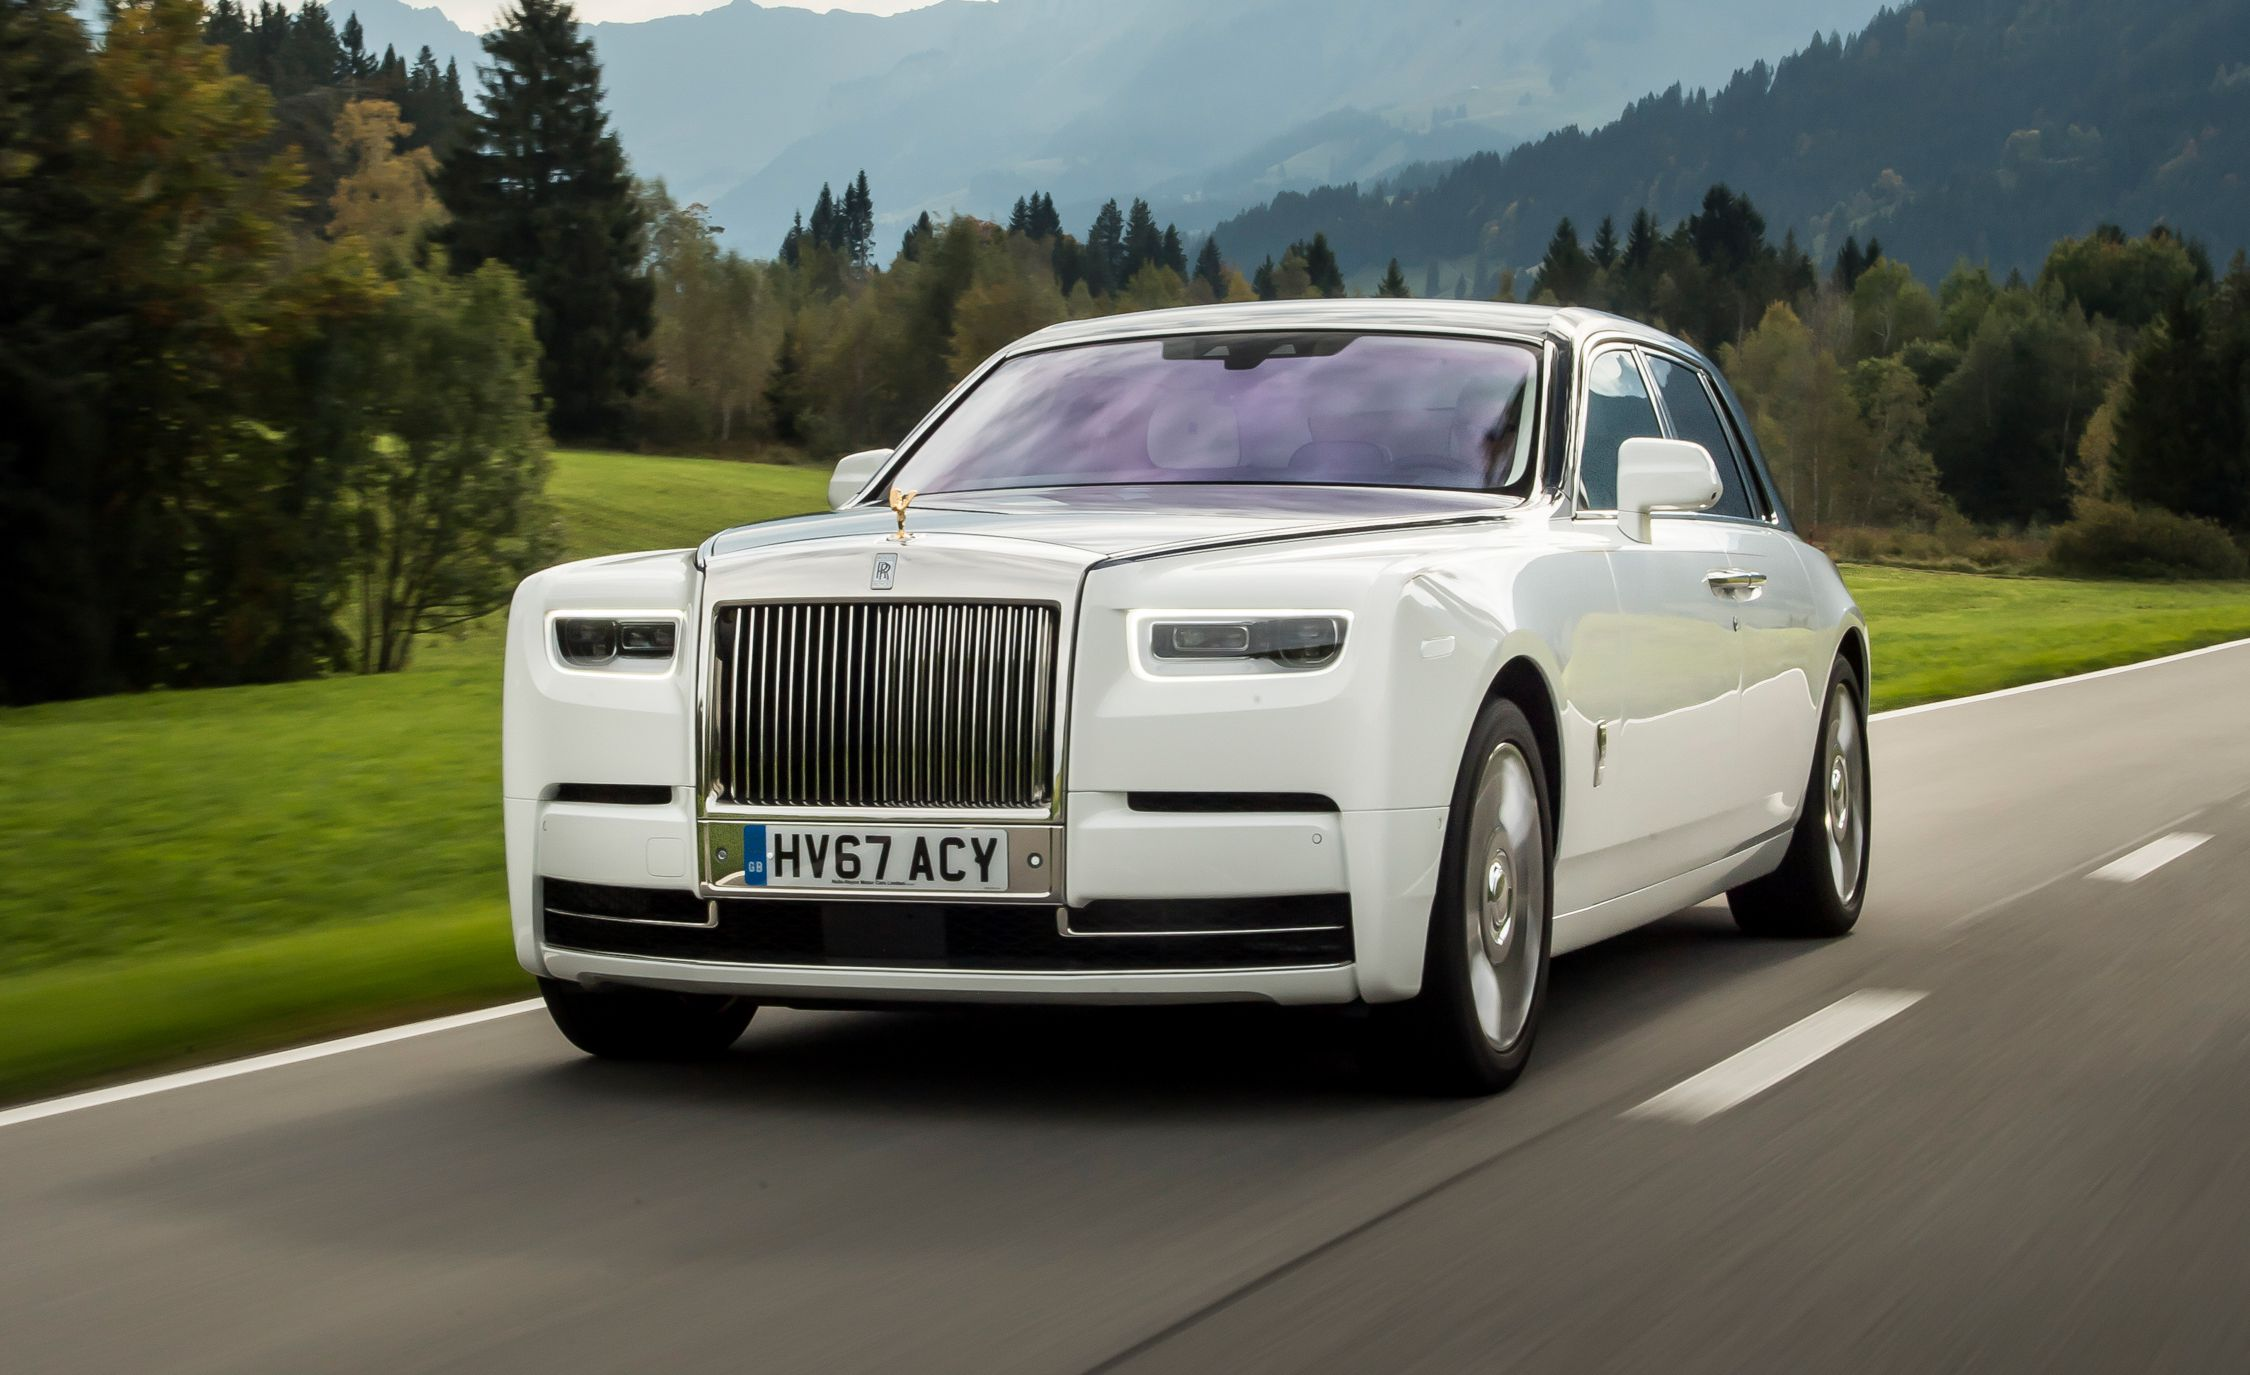 Rolls Royce Phantom Chauffeur Hire UK